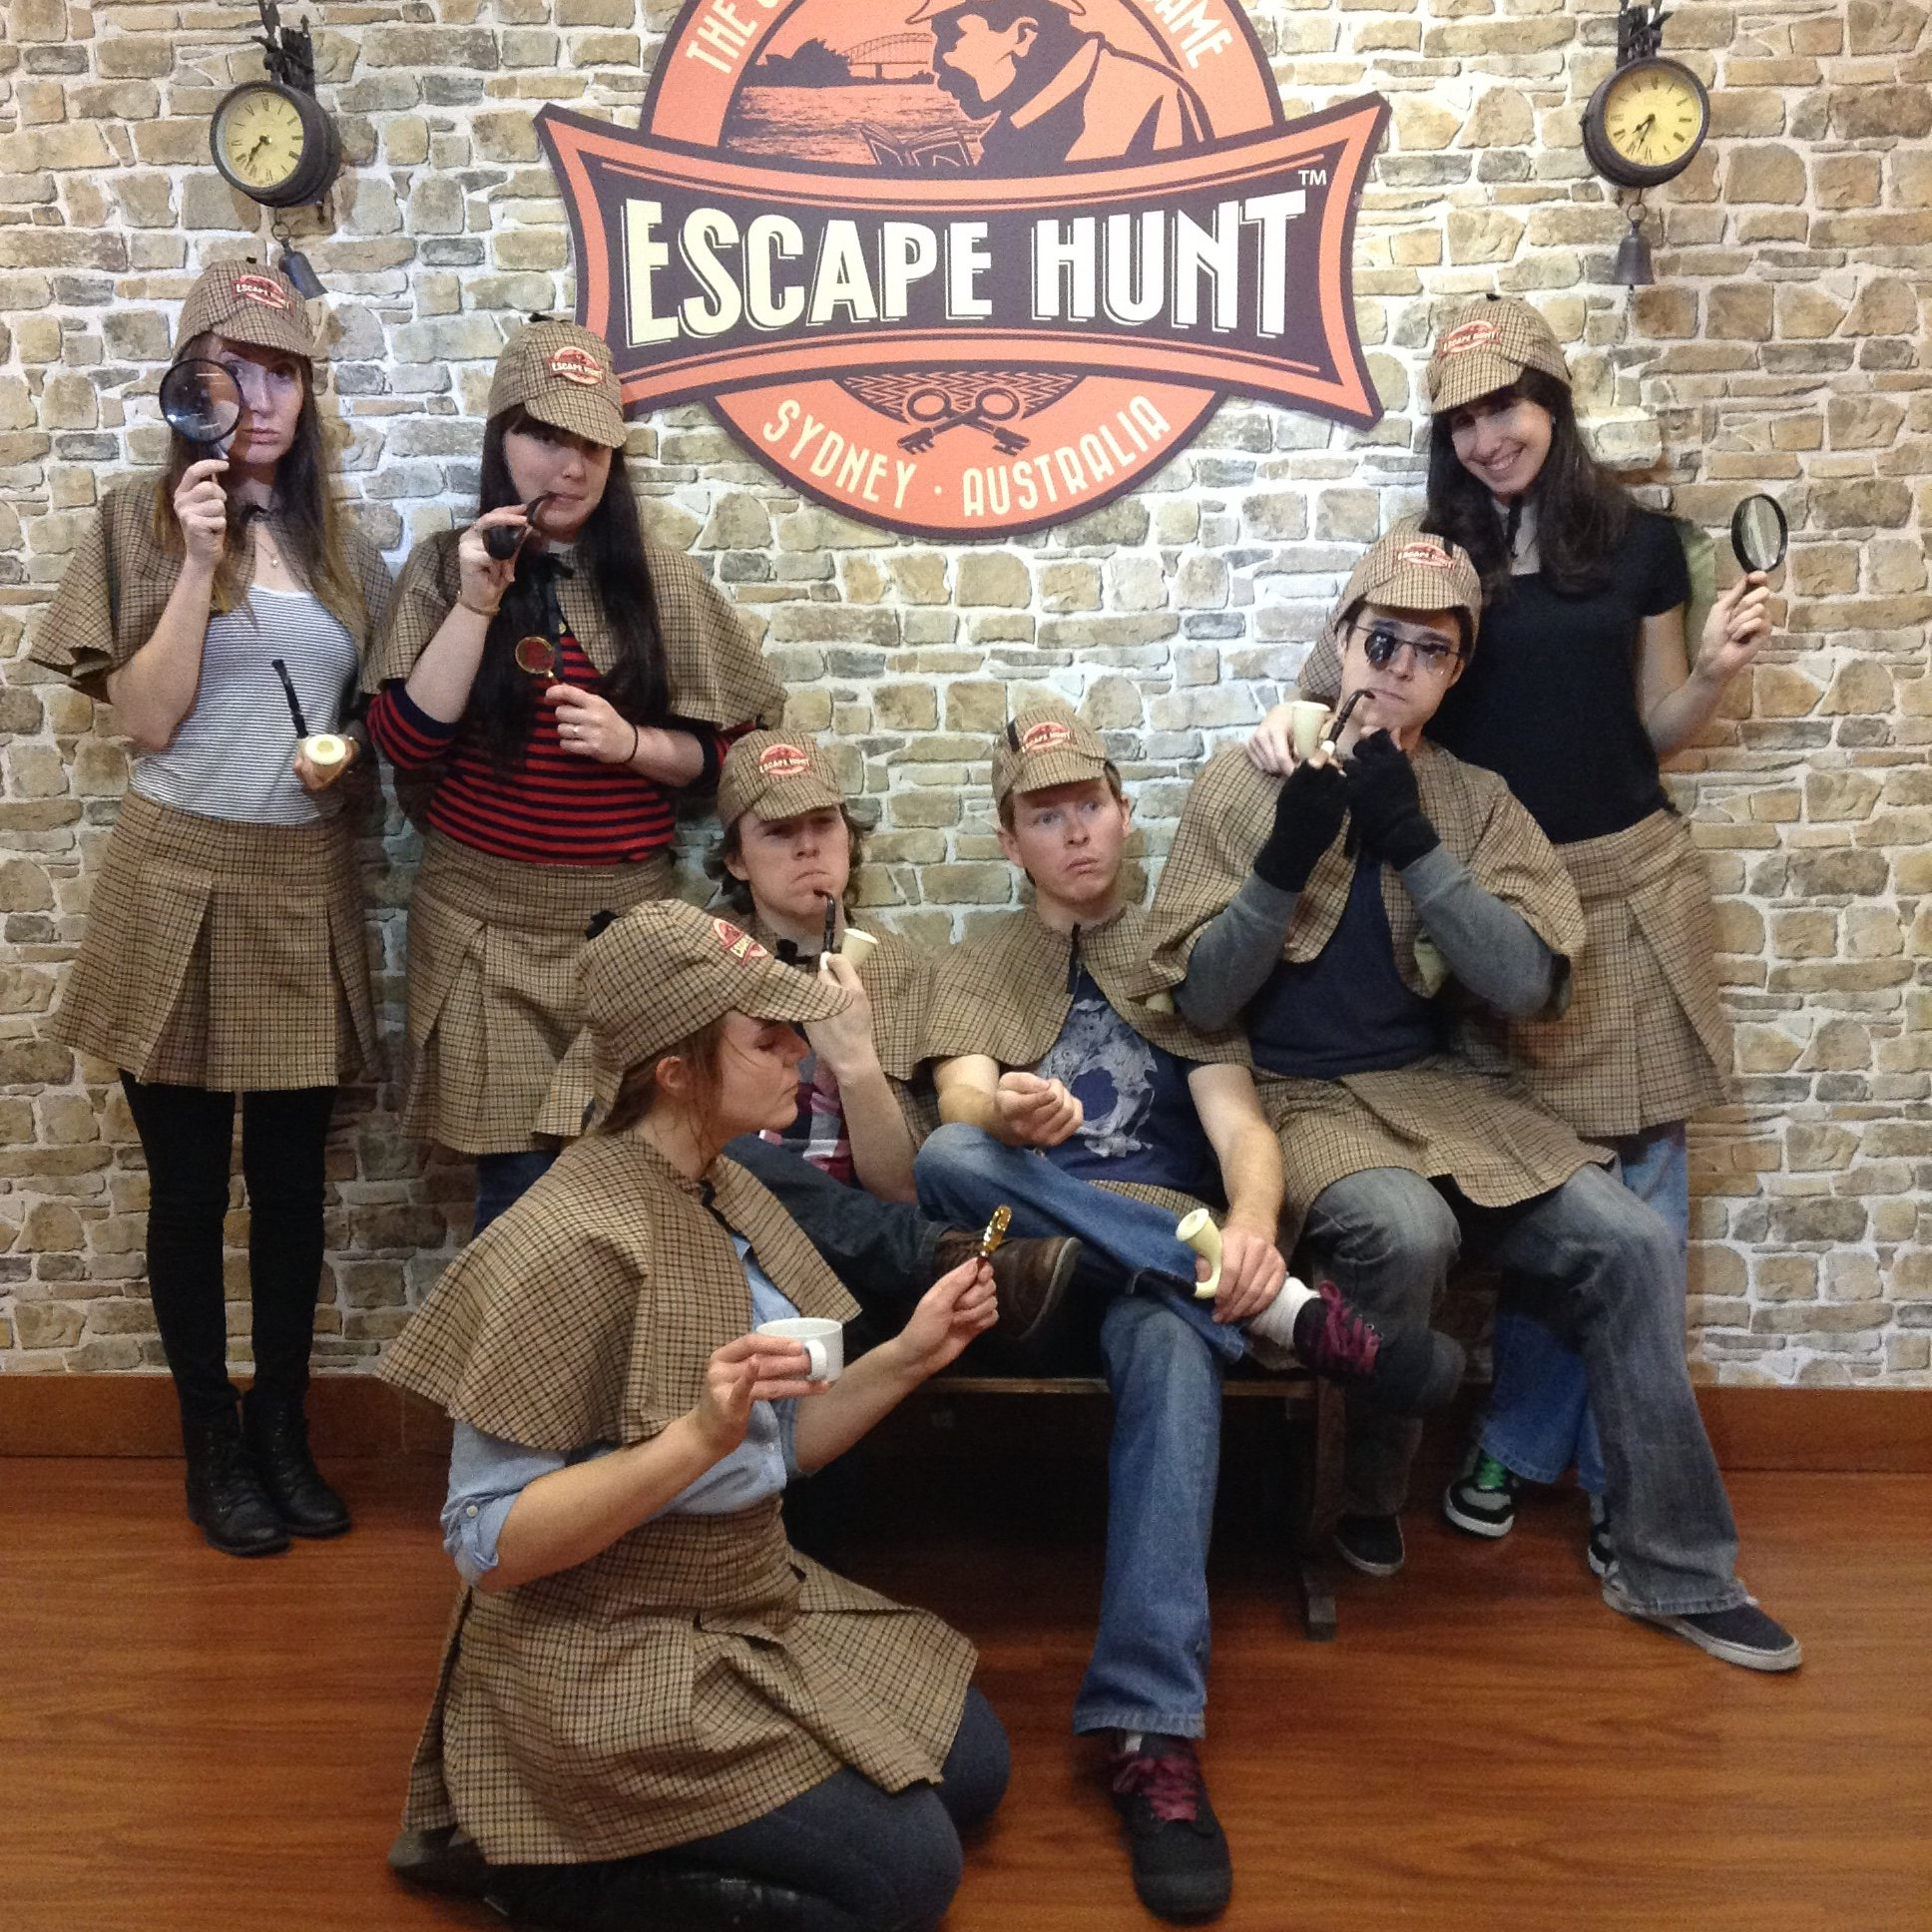 Period-costume fun after playing a real escape room